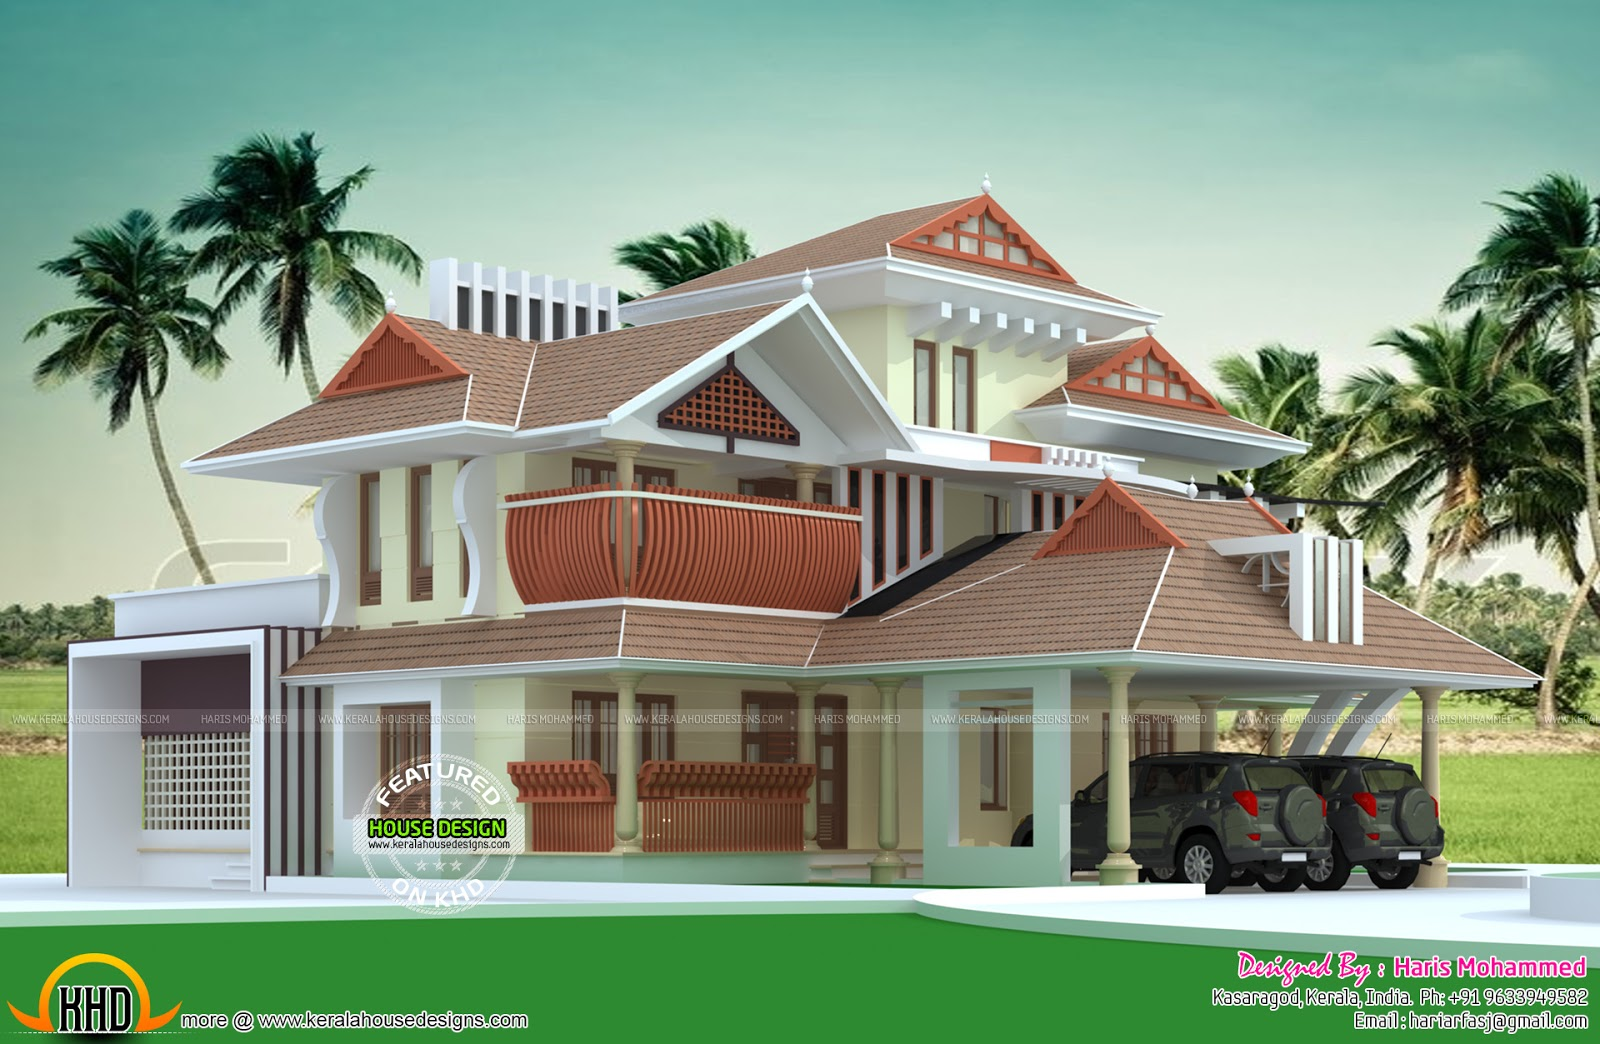 New traditional vastu based kerala home design kerala home design and floor plans - New house design ...